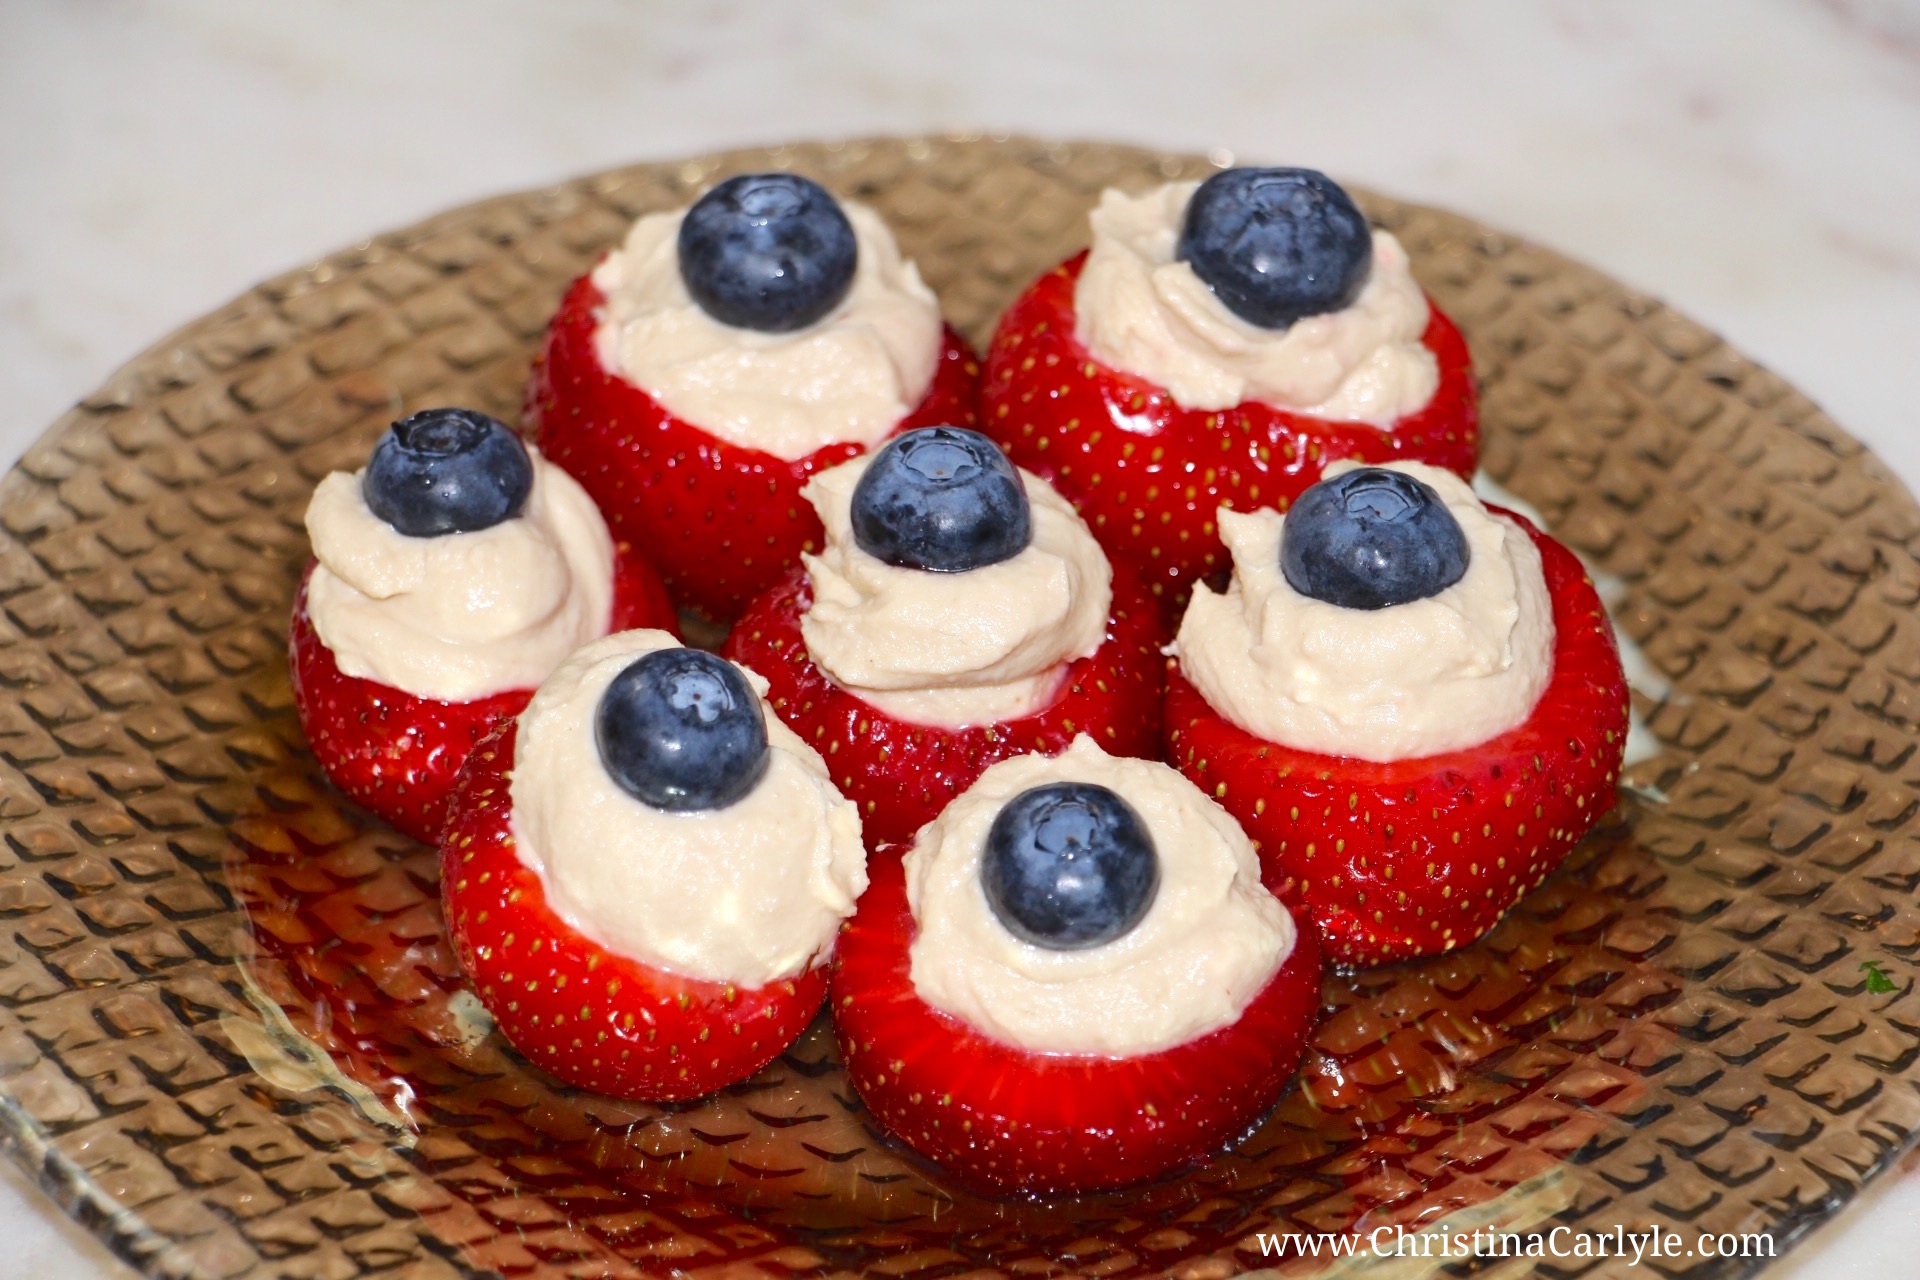 Red white and Blue Hummus Blueberry and Strawberry Bites Recipe | Healthy 4th of July Recipes from nutritionist Christina Carlyle https://www.christinacarlyle.com/healthy-4th-of-july-recipes/